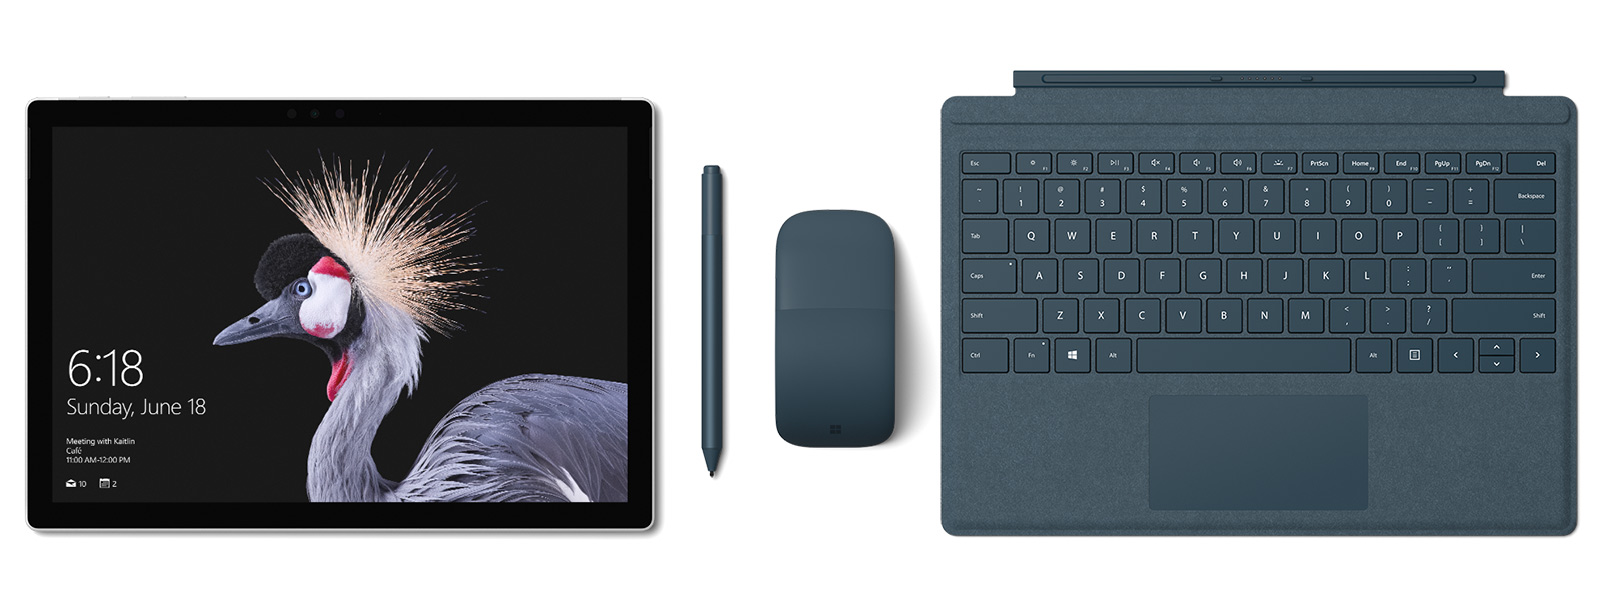 Afbeelding van Surface Pro met Surface Pro Signature Type Cover, Surface-pen en Surface Arc Mouse in kobaltblauw. Geleverd met Surface-pen.